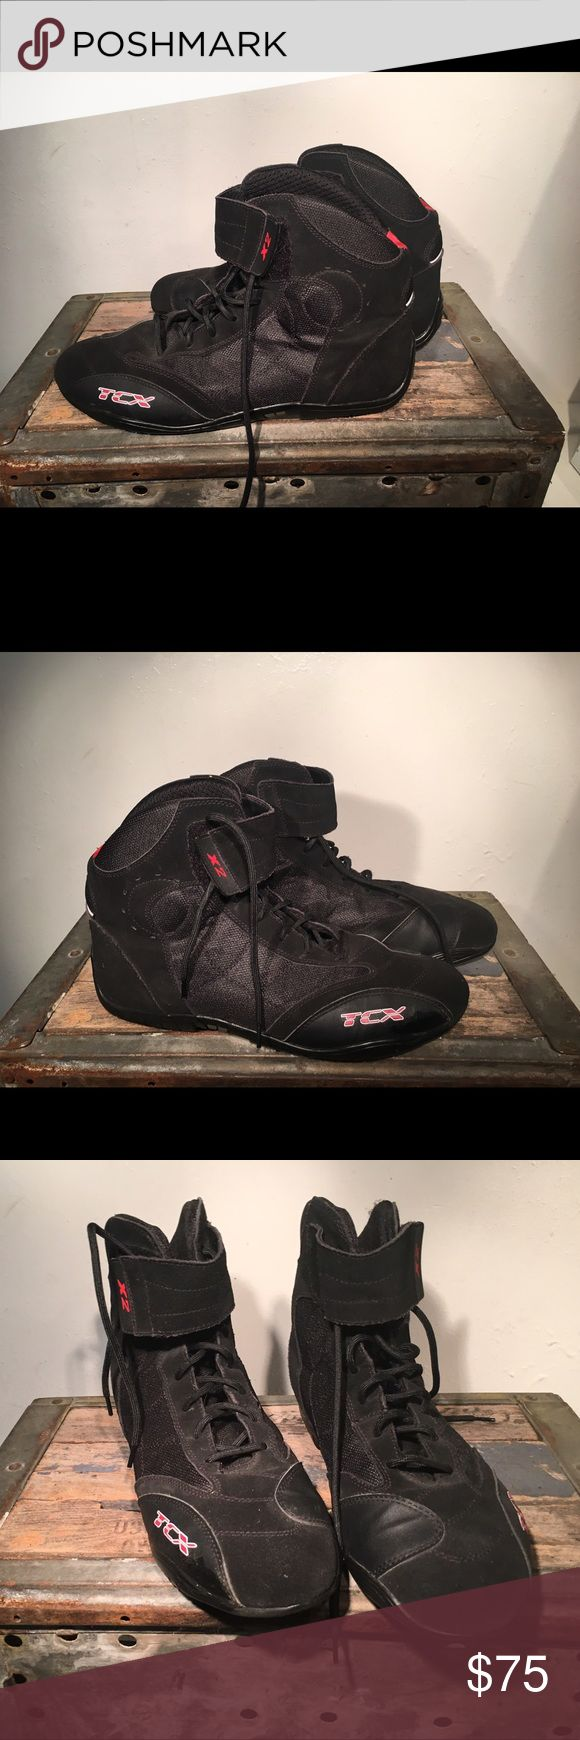 TCX Motorcycle Riding Shoe or Boot TCX Motorcycle Riding Shoe/Boot in almost New Condition! Check out the photos and make me an offer! TCX Shoes Boots